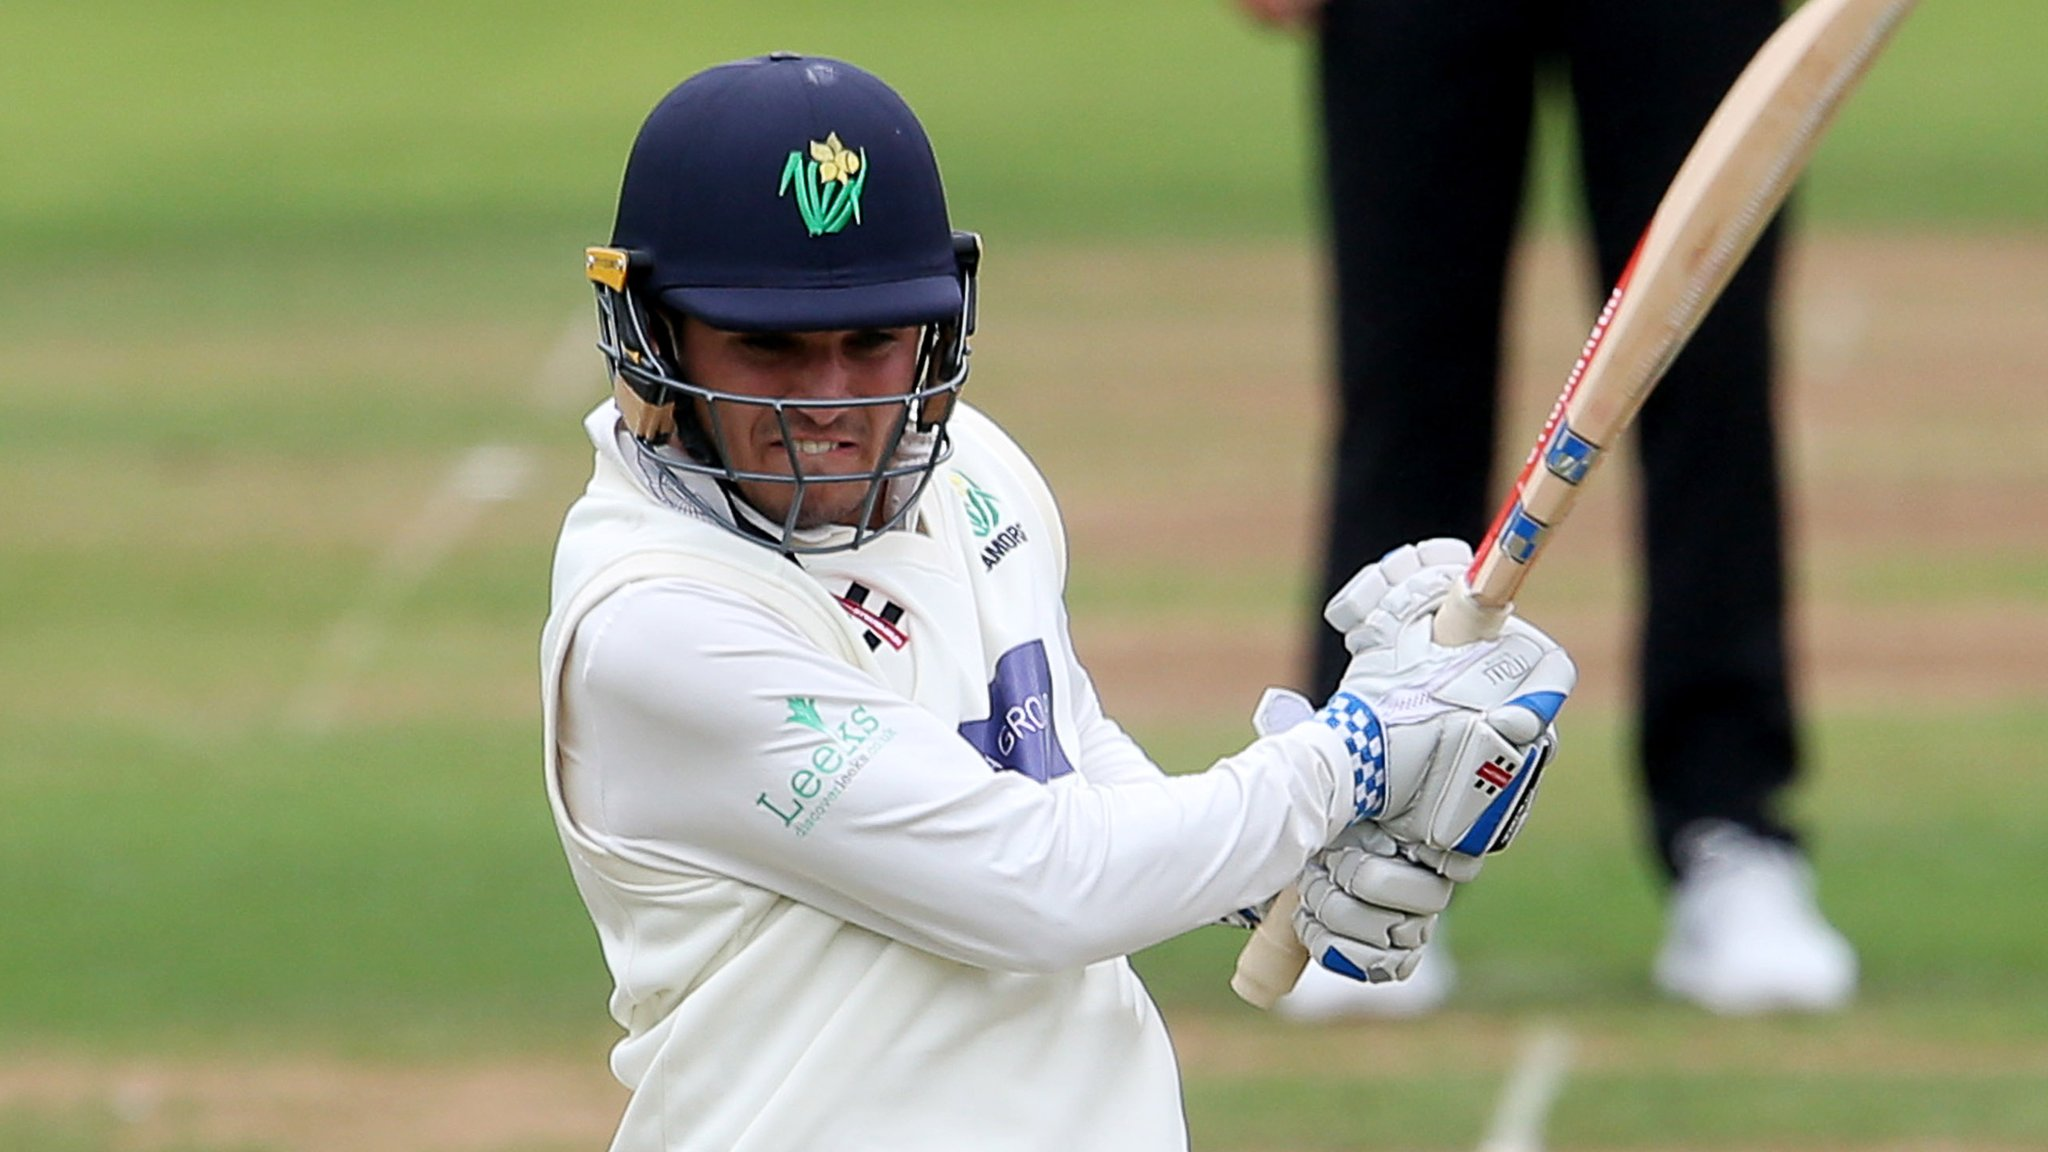 County Championship: Carlson puts Glamorgan on top against Leics